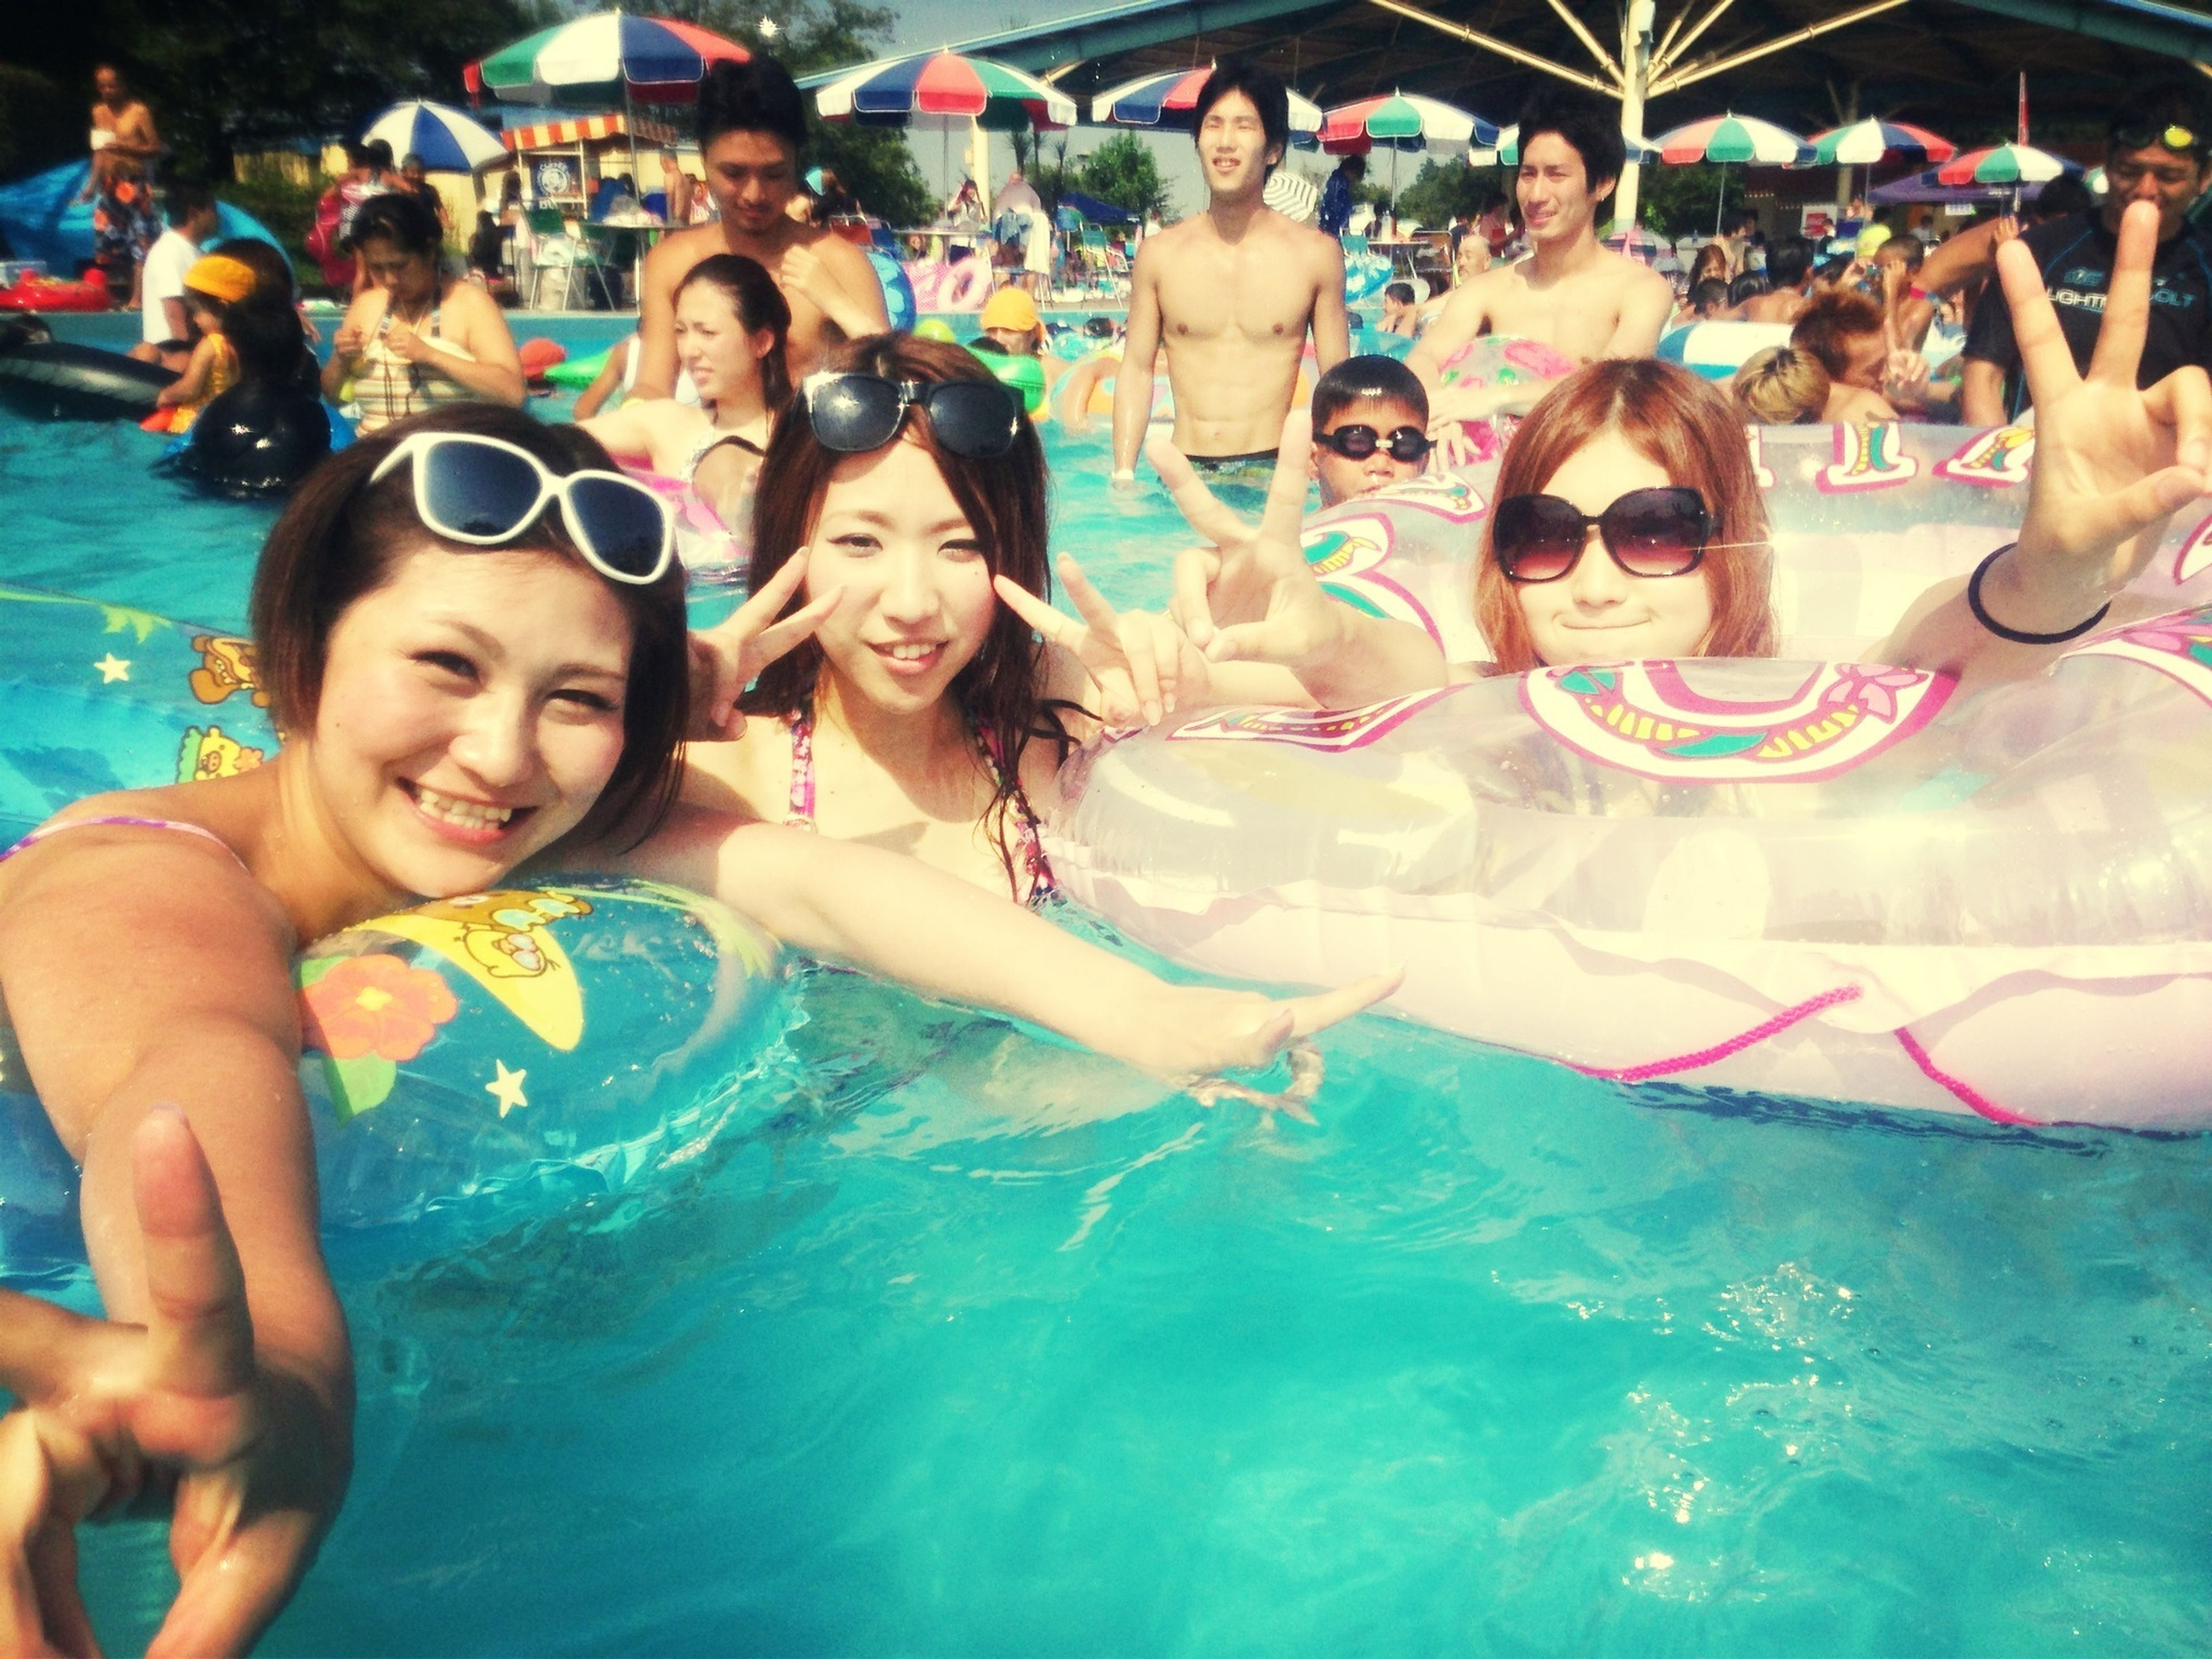 lifestyles, leisure activity, water, enjoyment, fun, togetherness, happiness, vacations, person, large group of people, friendship, sea, bonding, swimming pool, waterfront, enjoying, young women, smiling